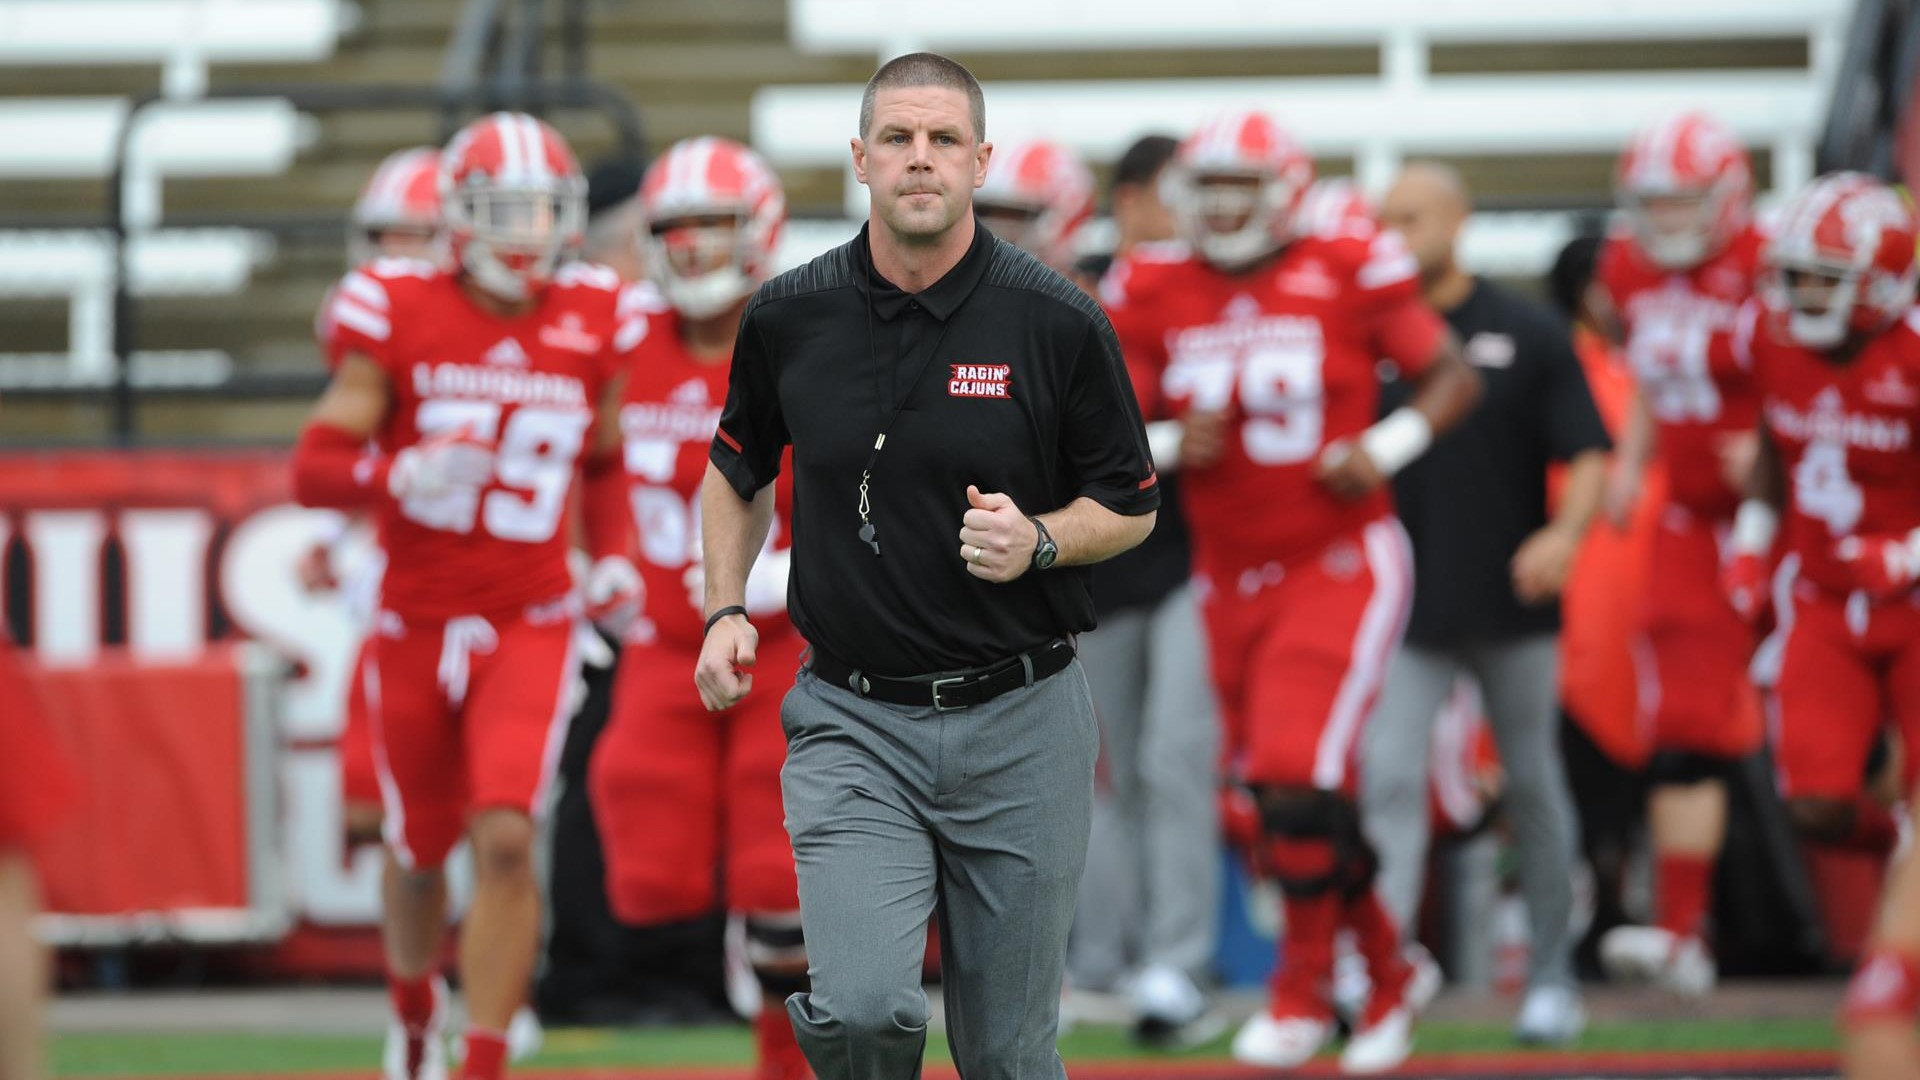 Louisiana Ragin' Cajuns head coach Billy Napier walks away from his team